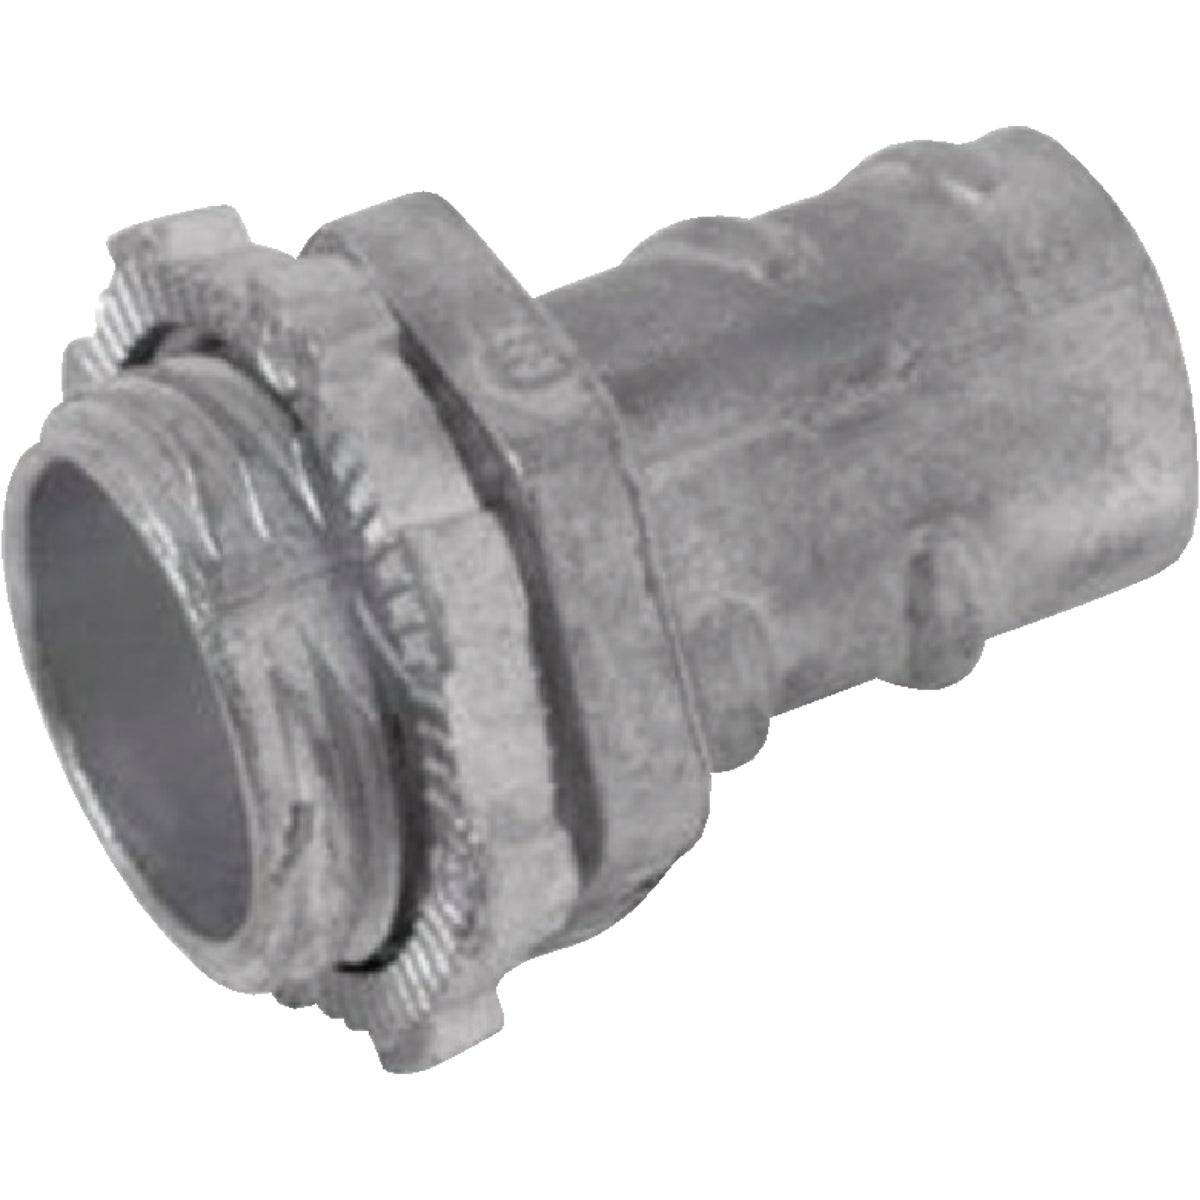 "5PC 1/2"" FLEX CONNECTOR - XC2415 by Thomas & Betts"